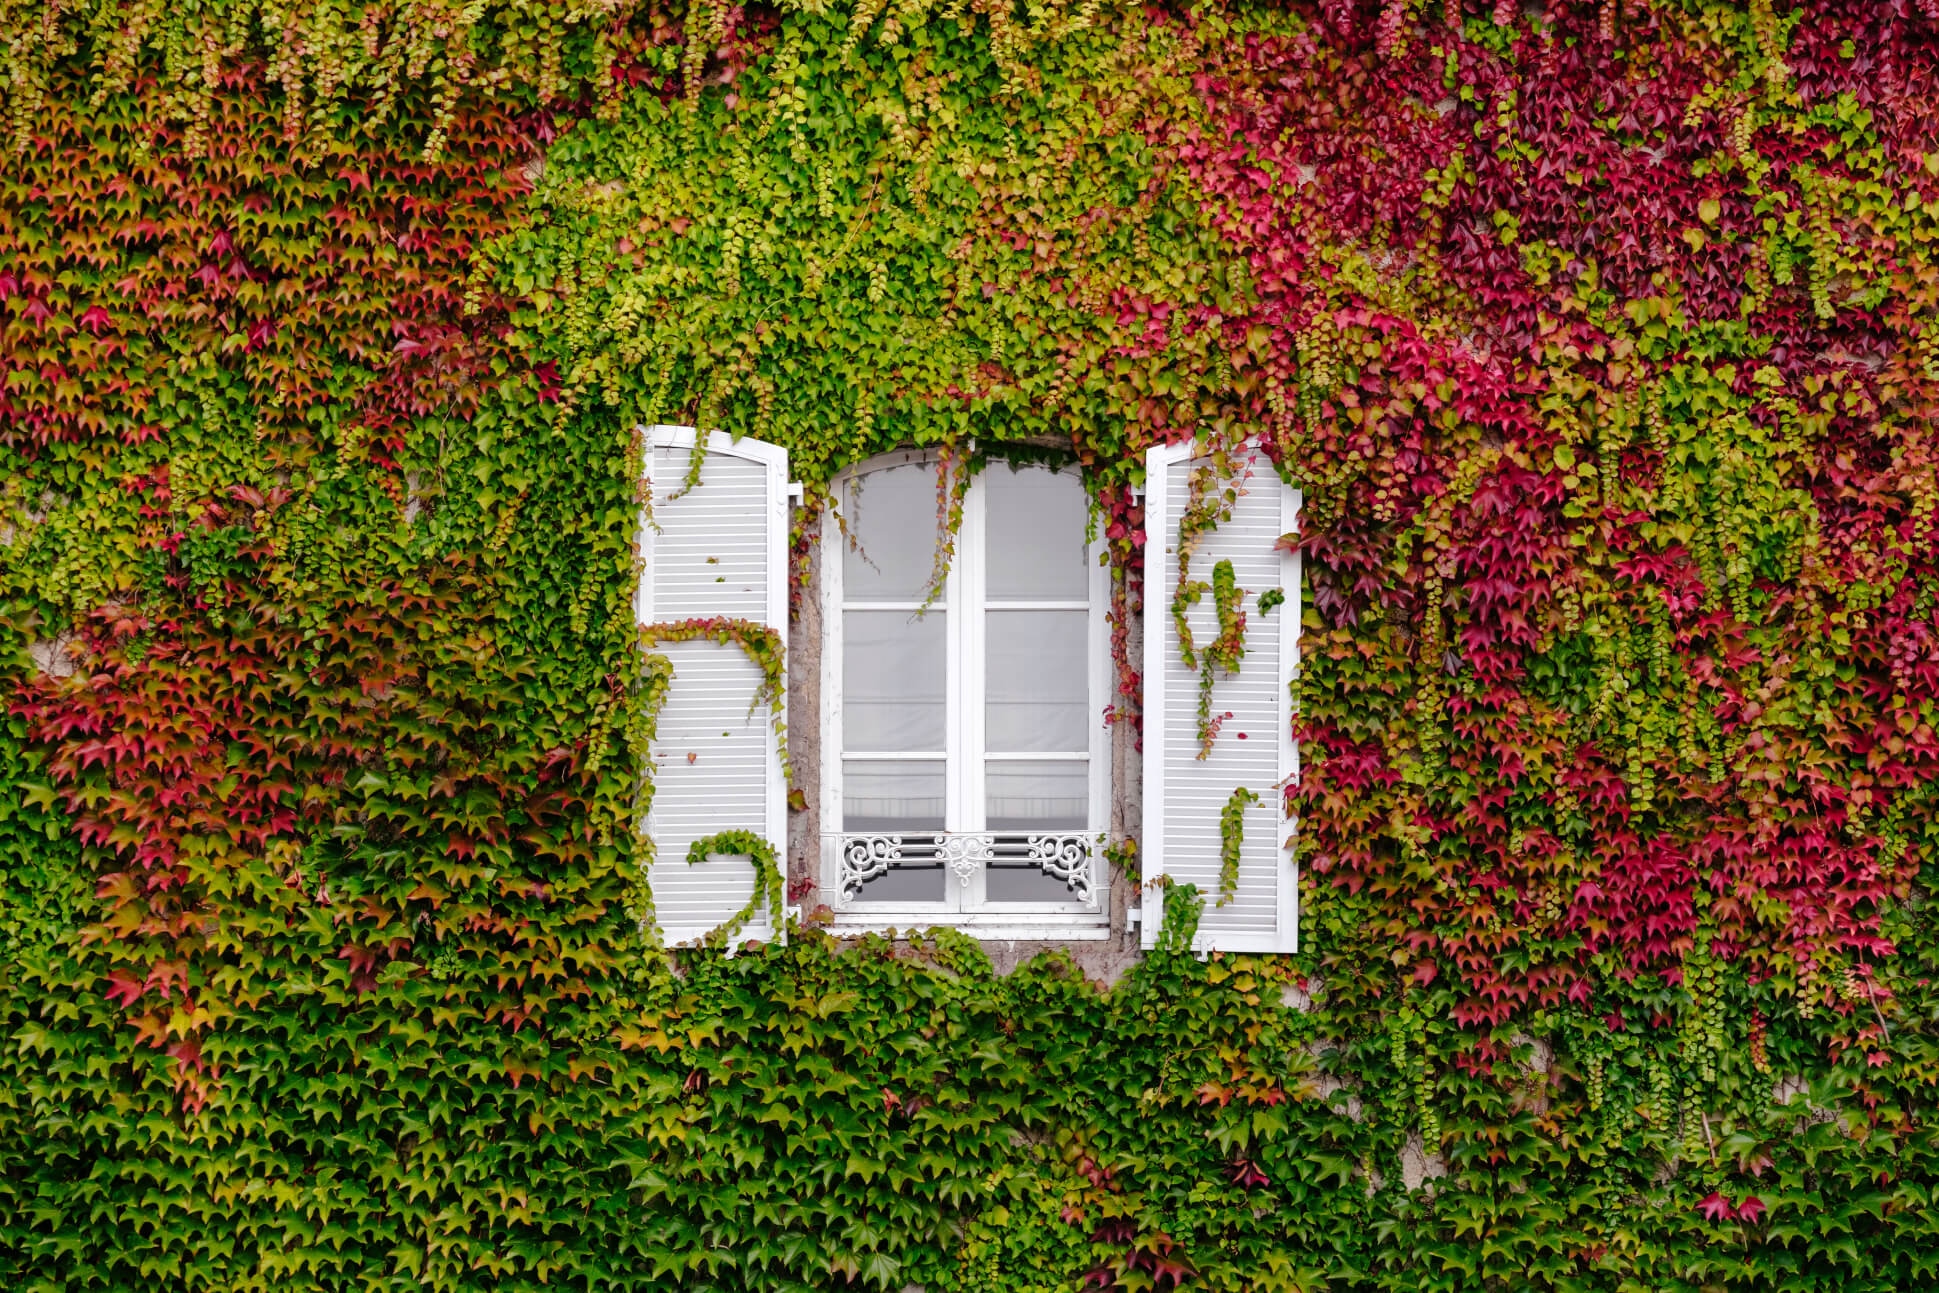 A white window on an ivy covered wall